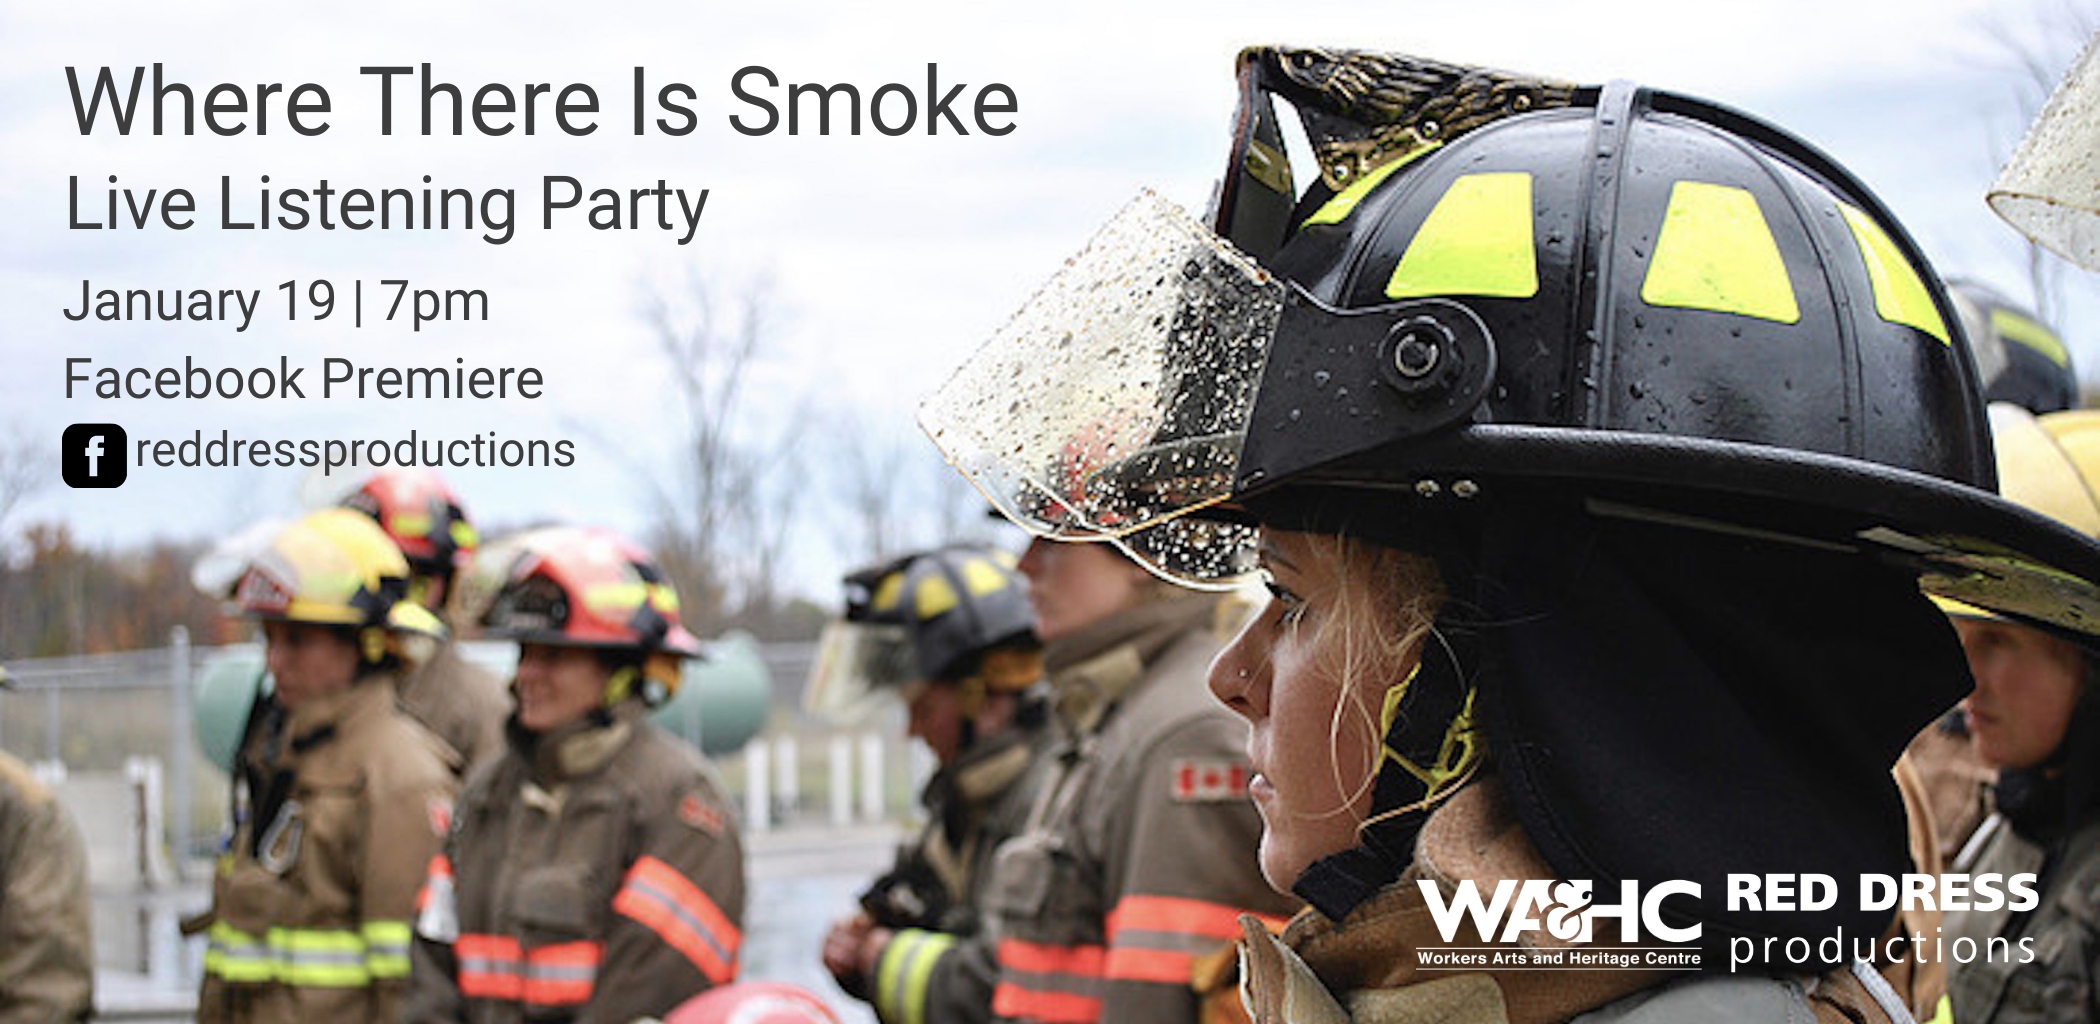 "Profile photograph of a female firefighter in full gear - text over image reads ""Where There Is Smoke, Live Listening Party, January 19 